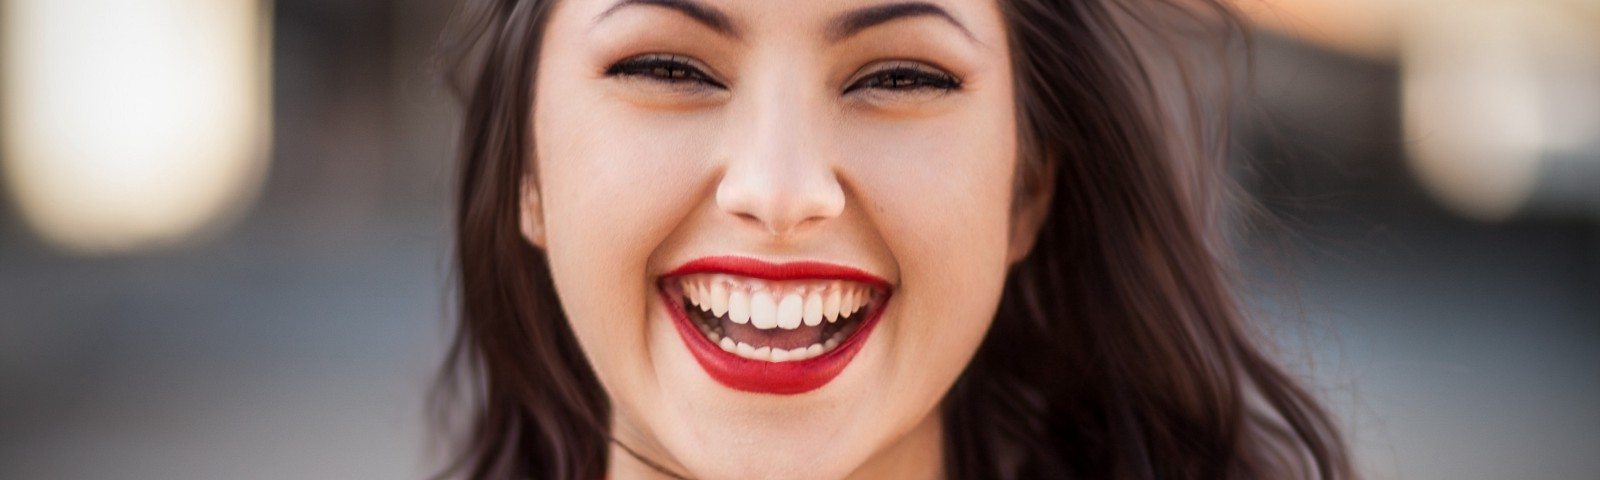 A brown-haired girl with a red sweater and red lipstick smiling.